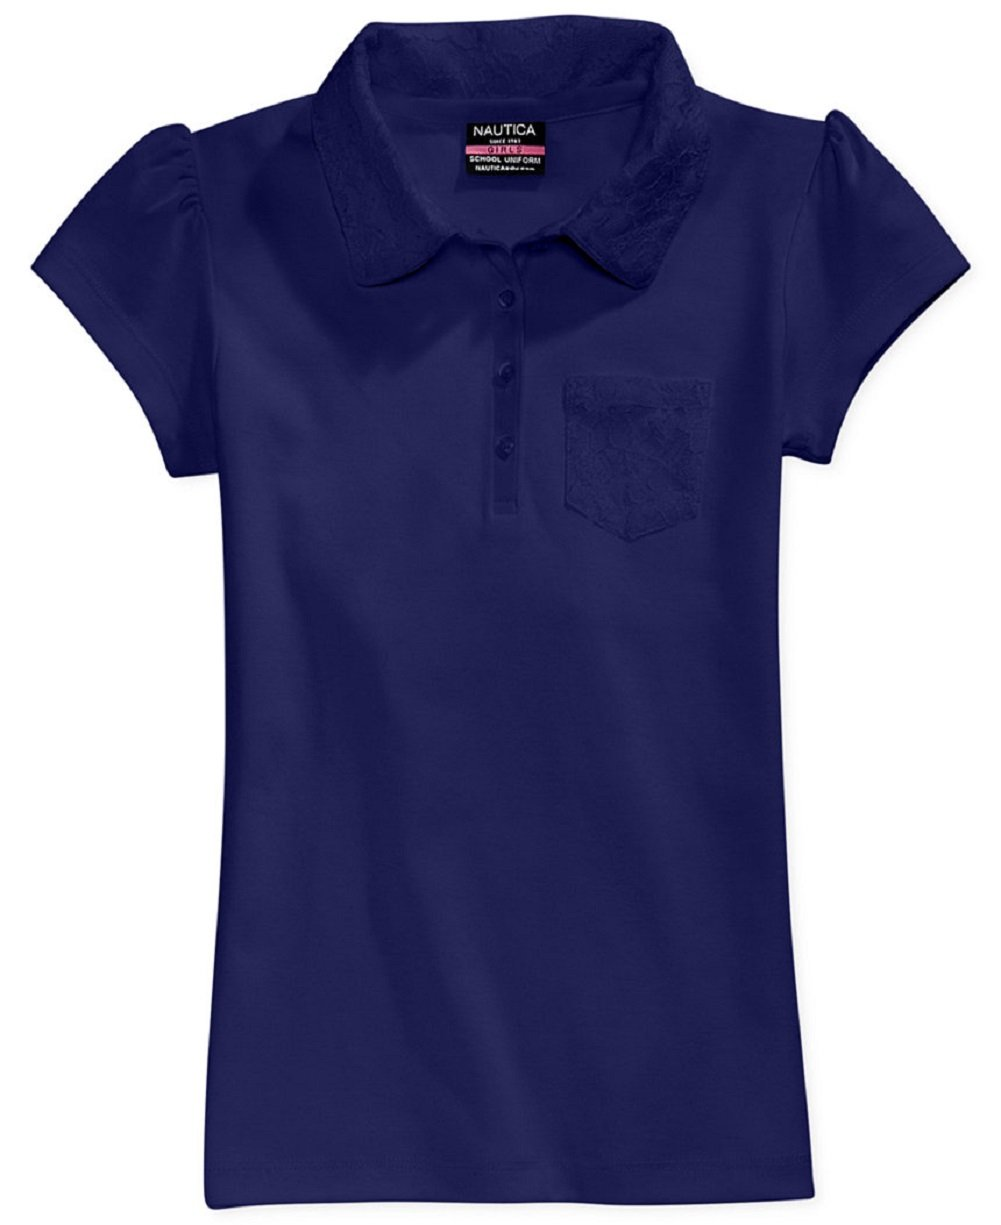 Nautica Girls' 7-16 Short Sleeve Polo Shirt with Lace Summer Navy XL (16)